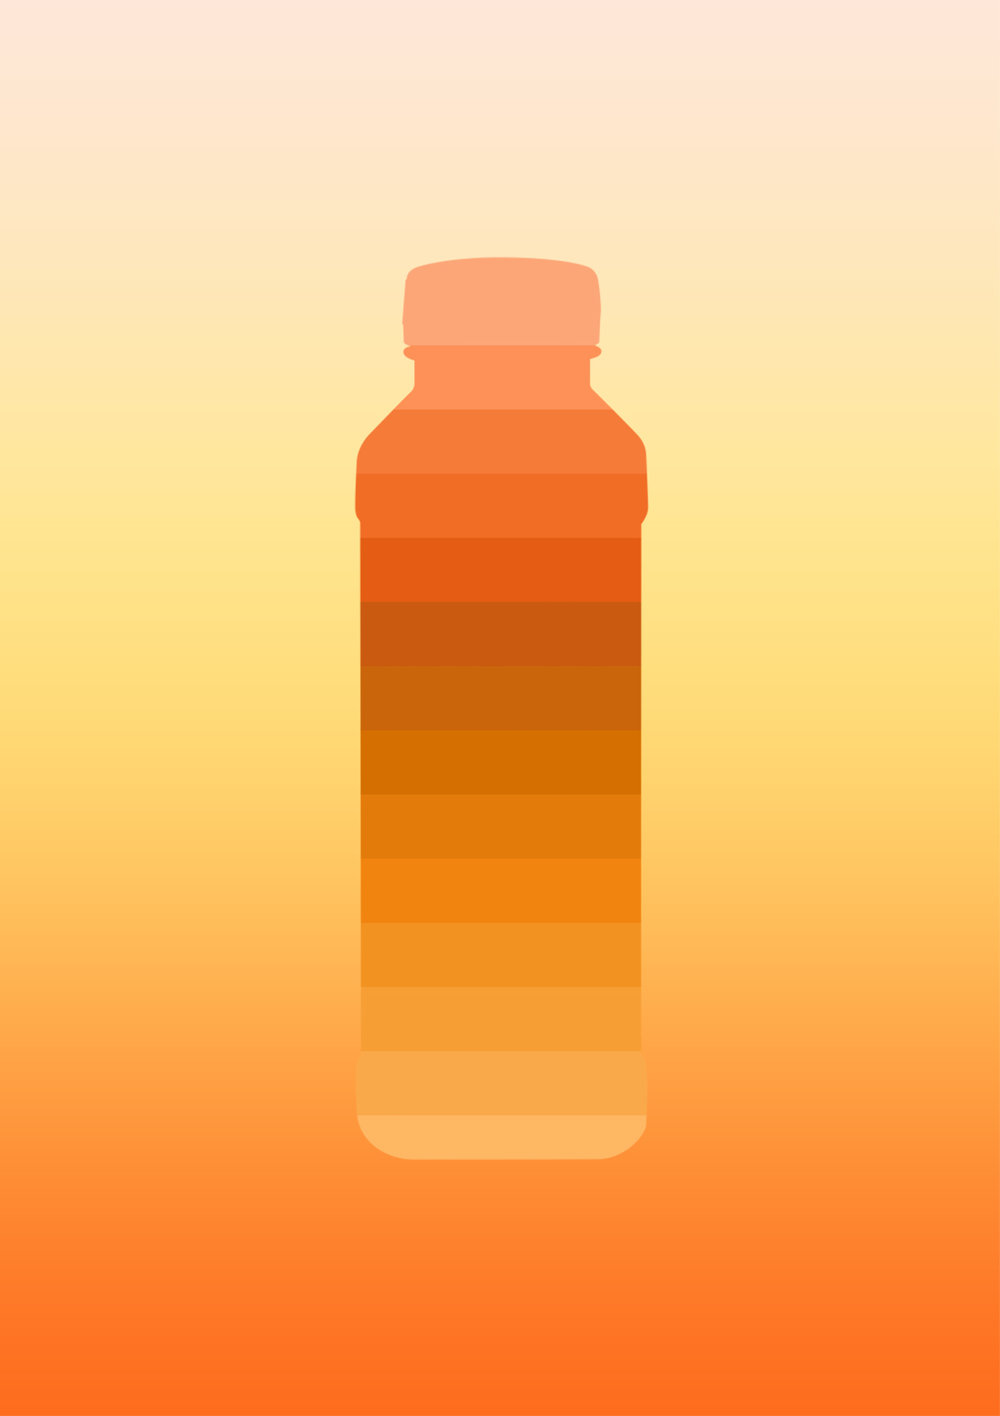 Carrots & Curcumajuice bottle / Illustrations - illustration of a gradient juice bottle inspired by carrots and curcuma